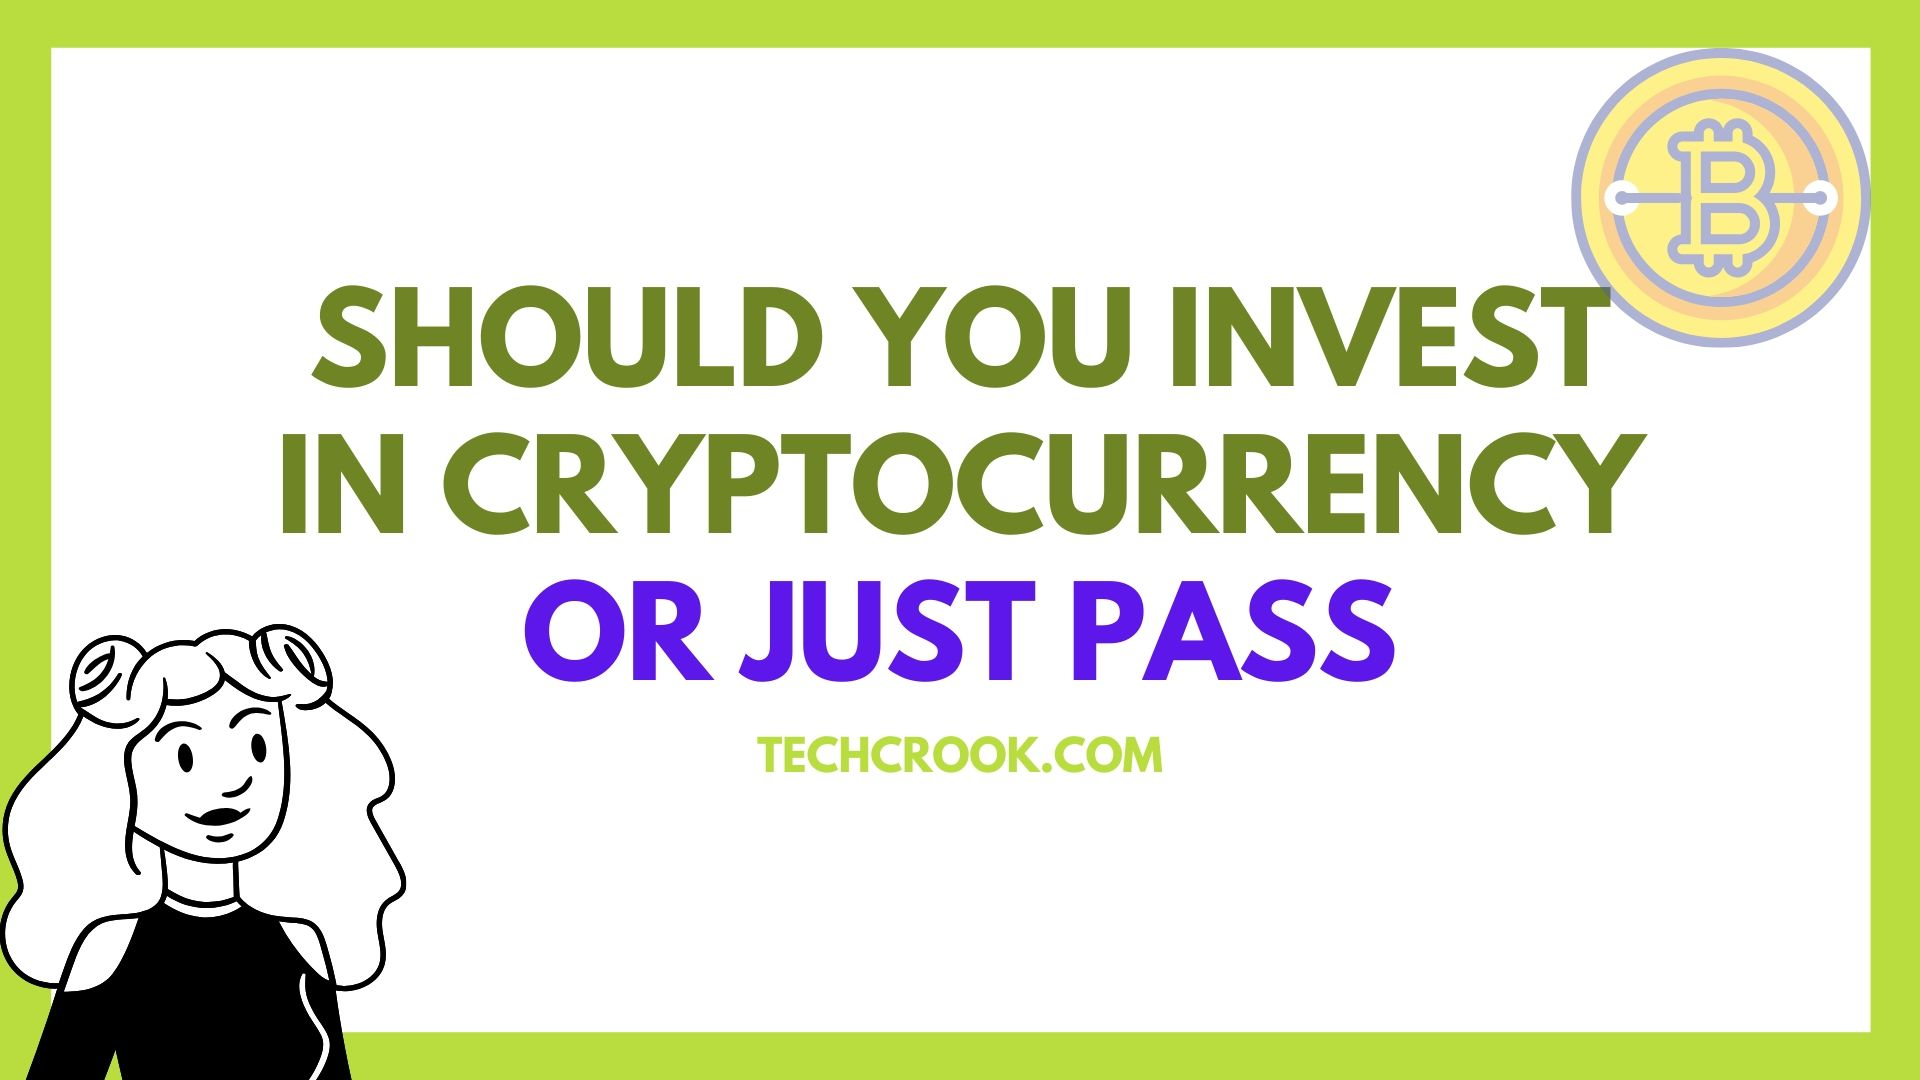 Should I invest in Bitcoin or cryptocurrencies or just pass